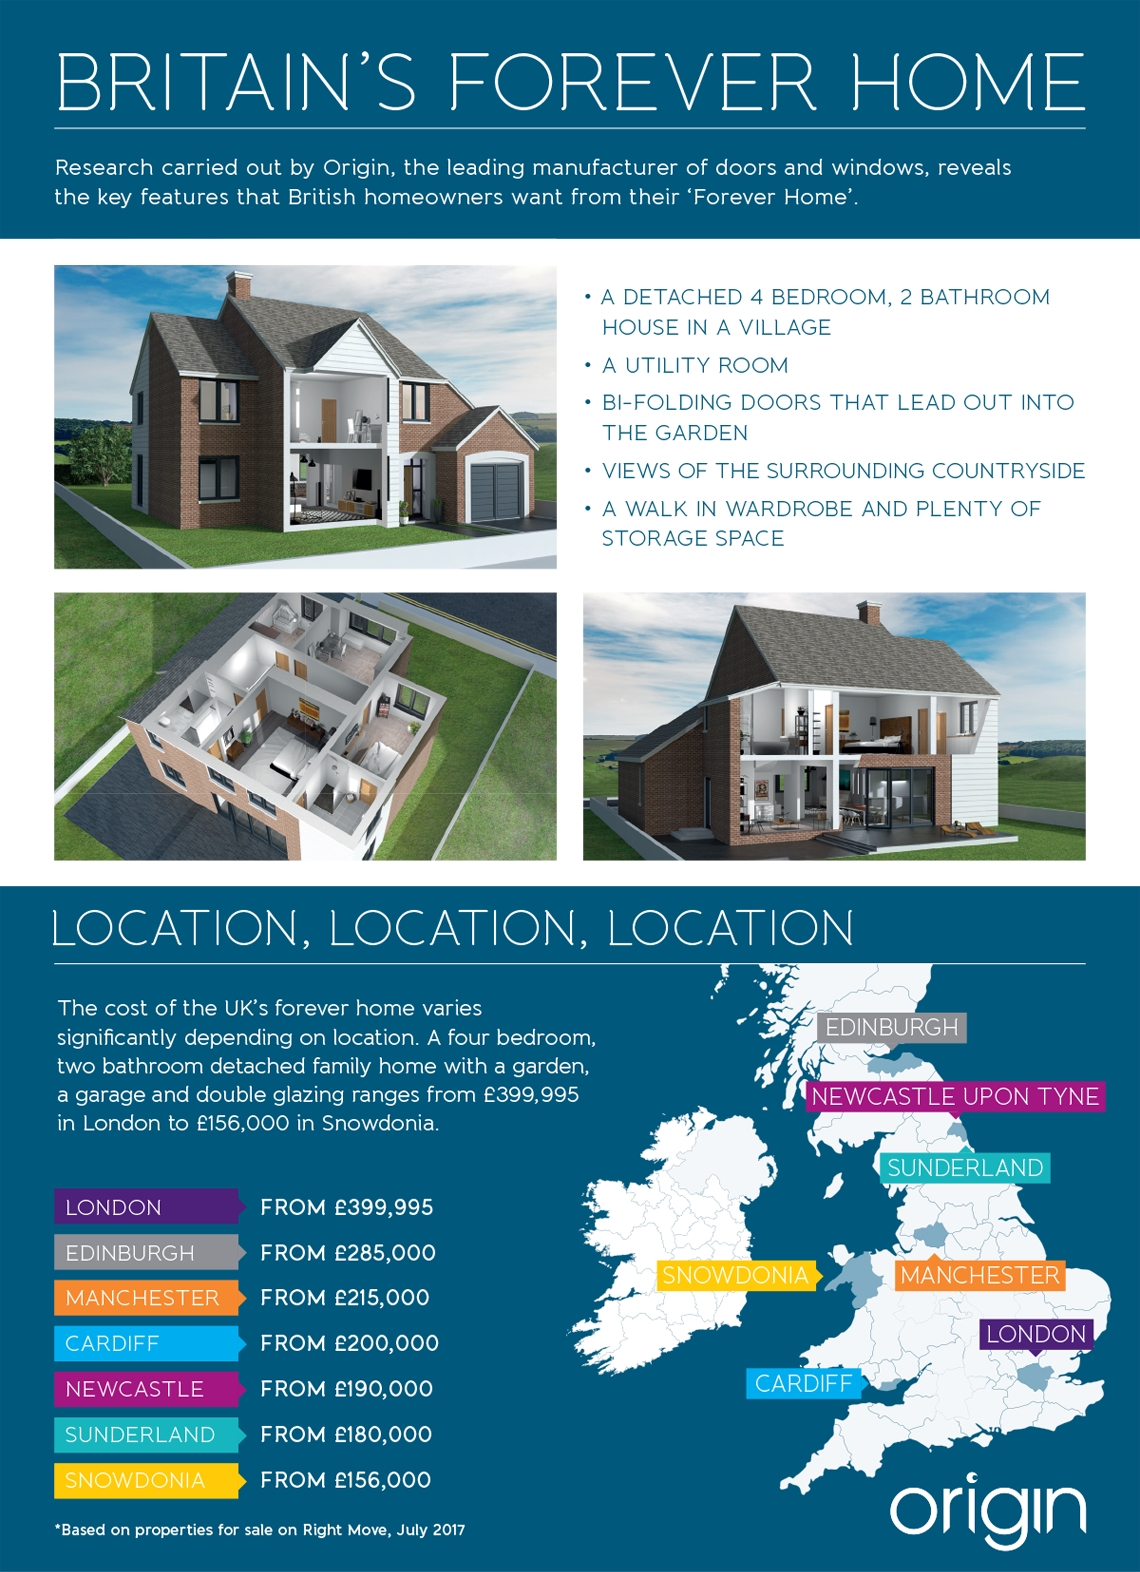 Britain's Forever Home infographic